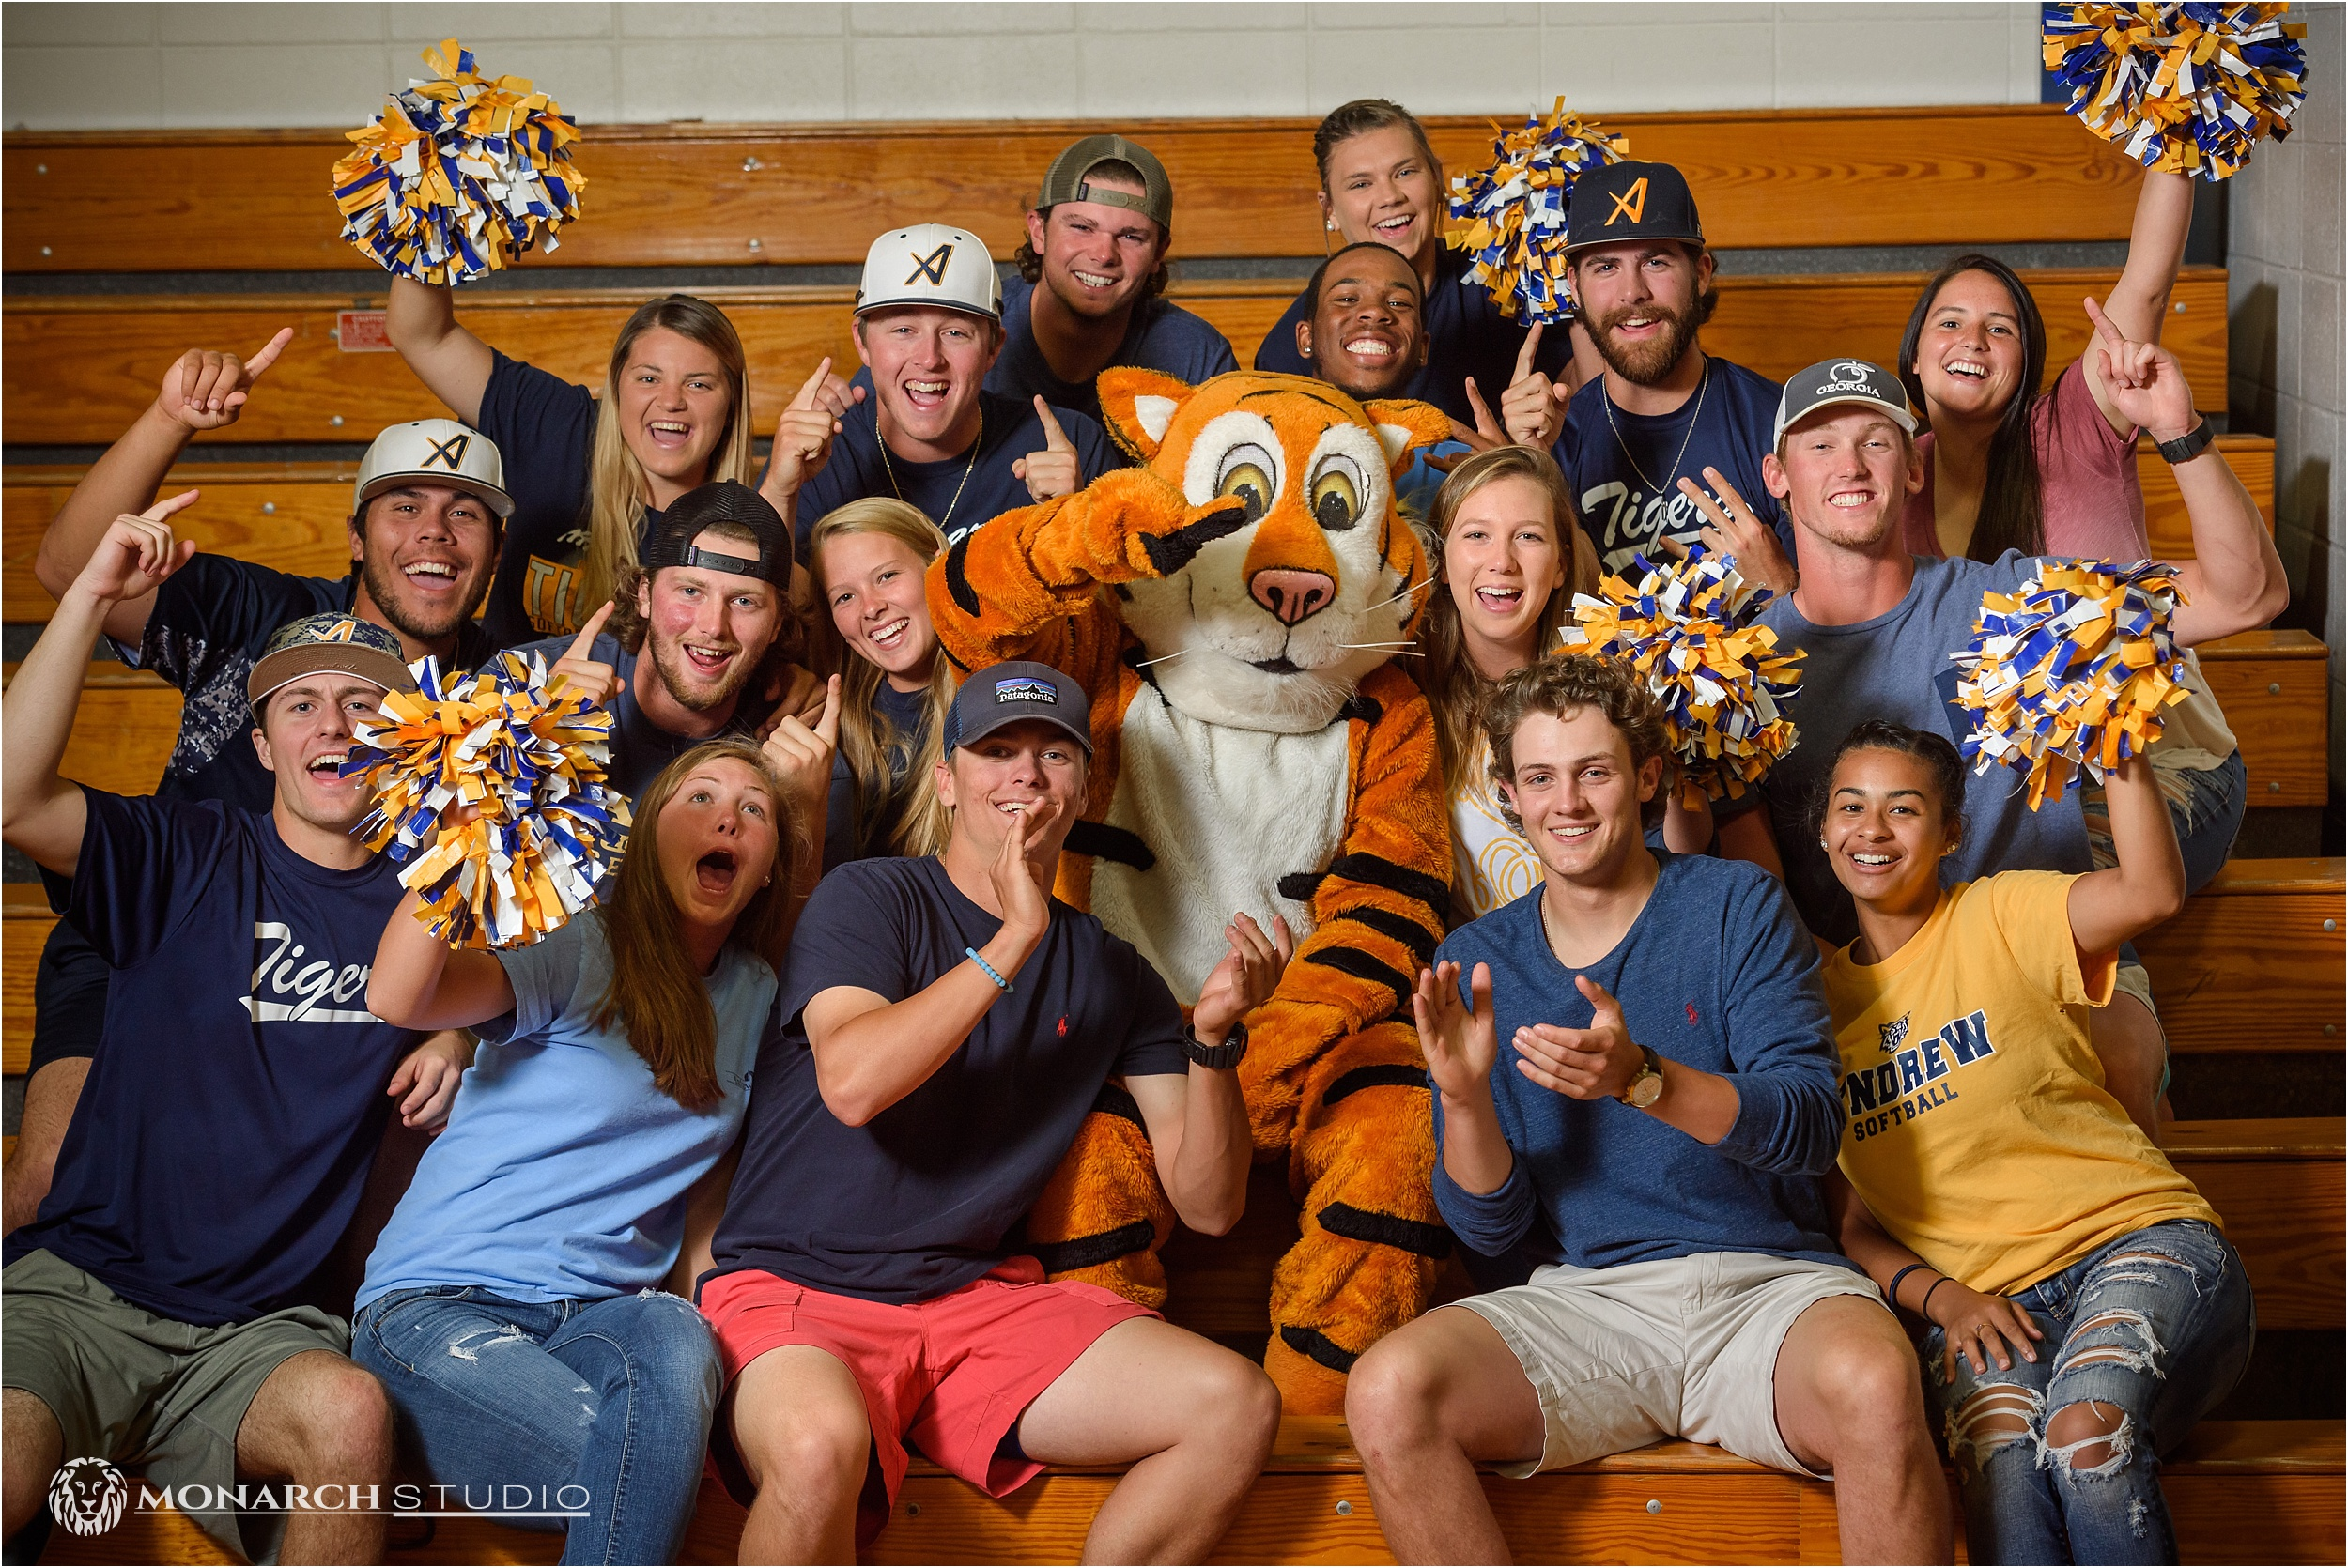 Boost your athletics marketing with engaging student life photography